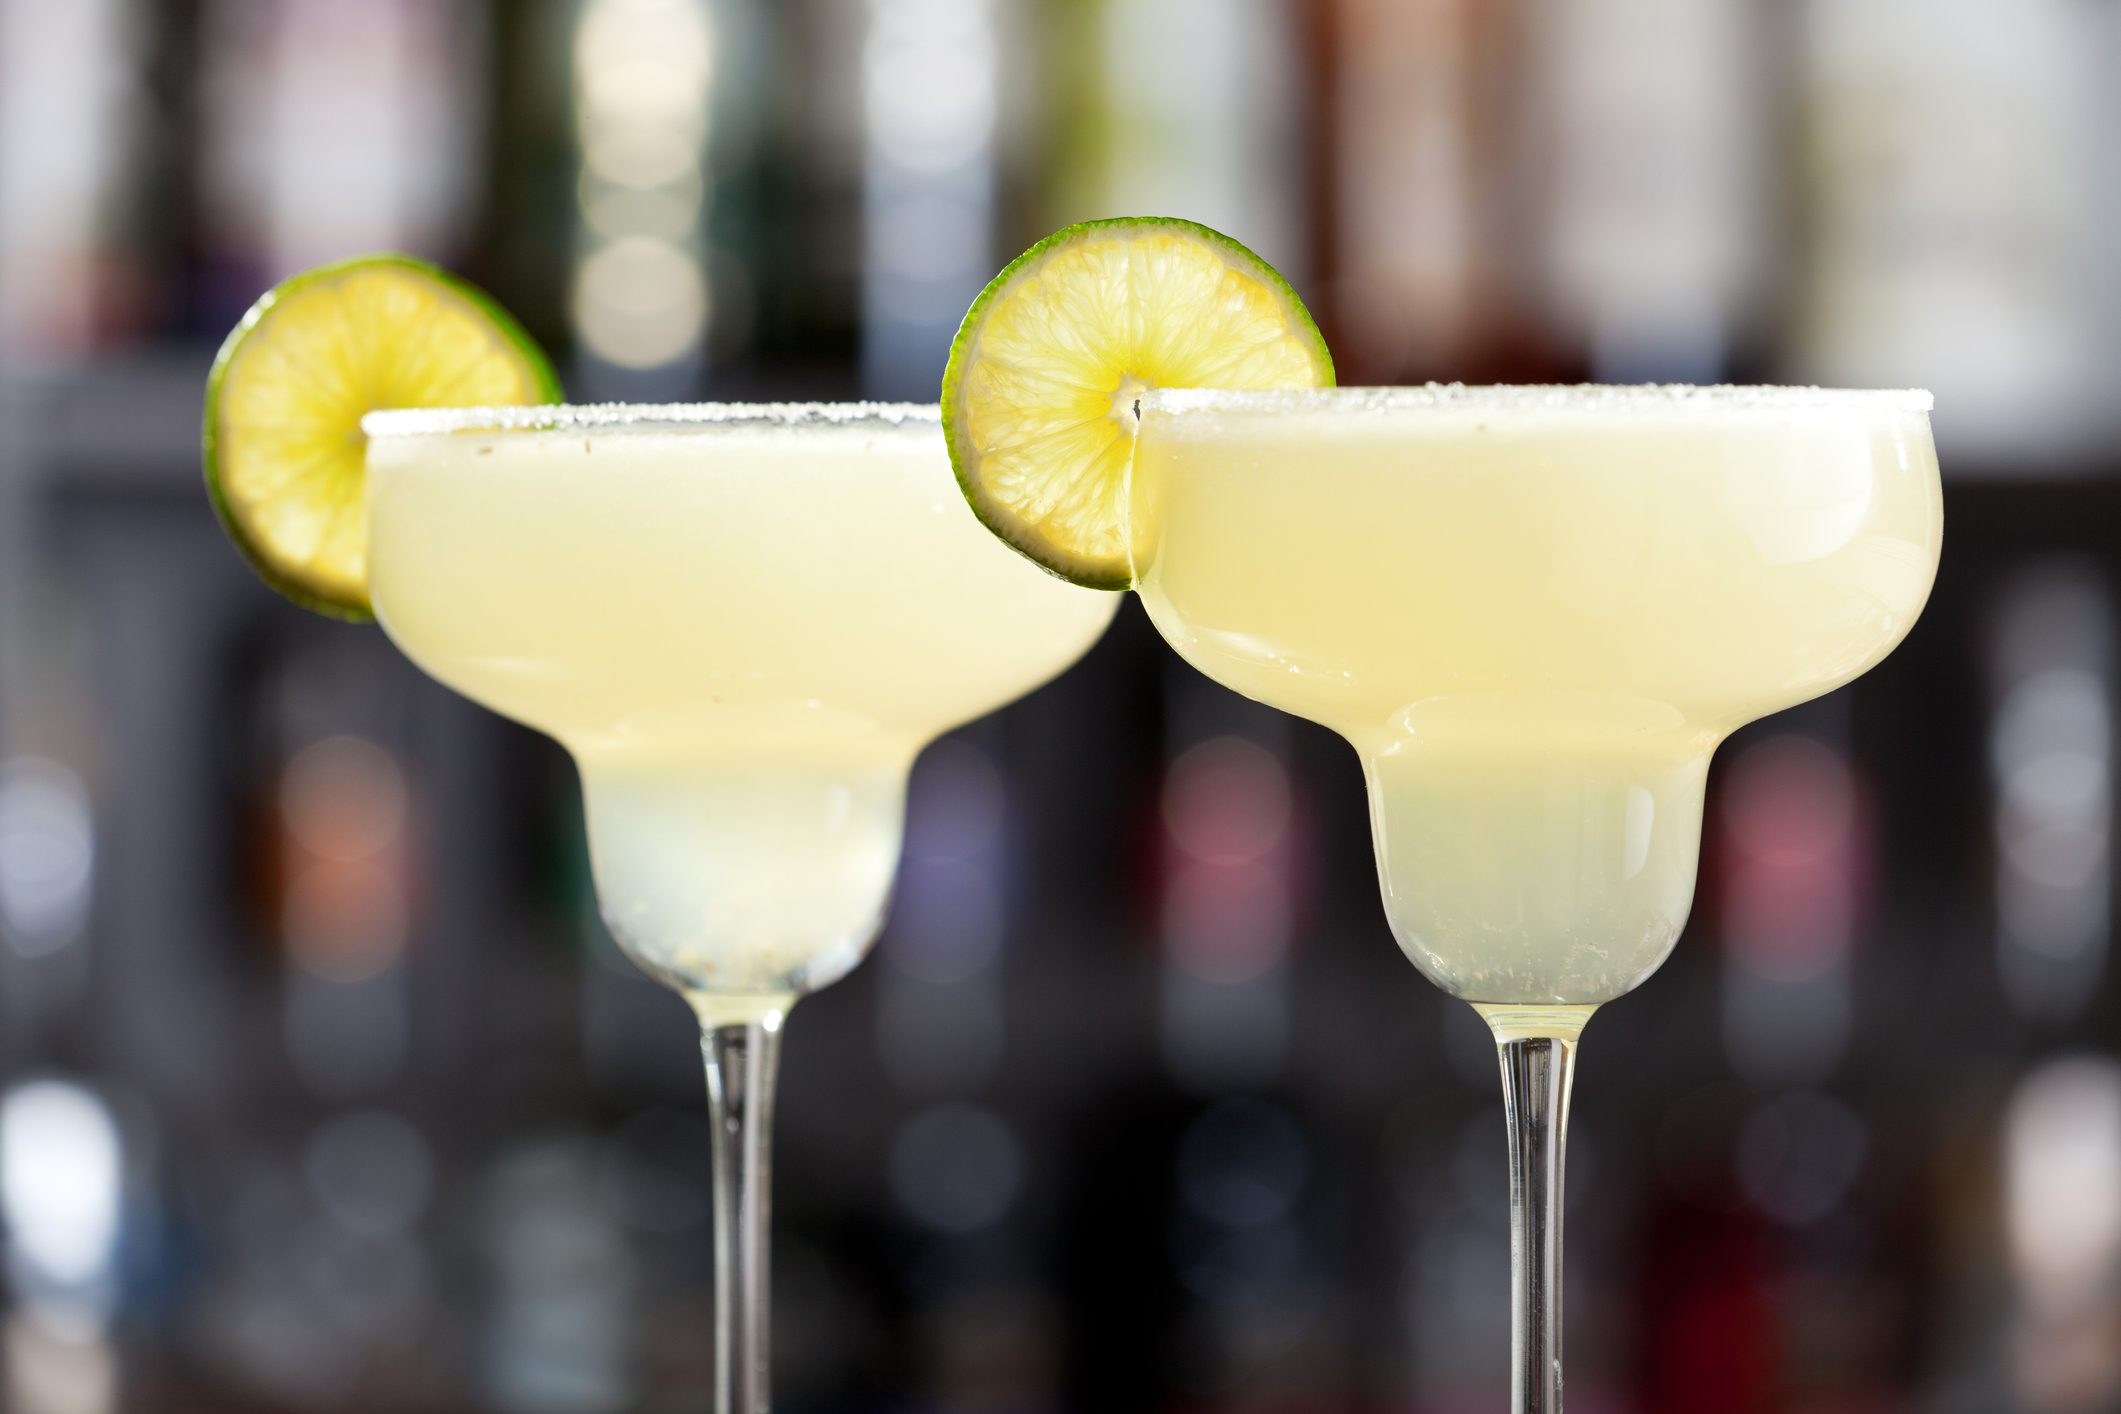 Two margaritas with lime wedges and salted glasses